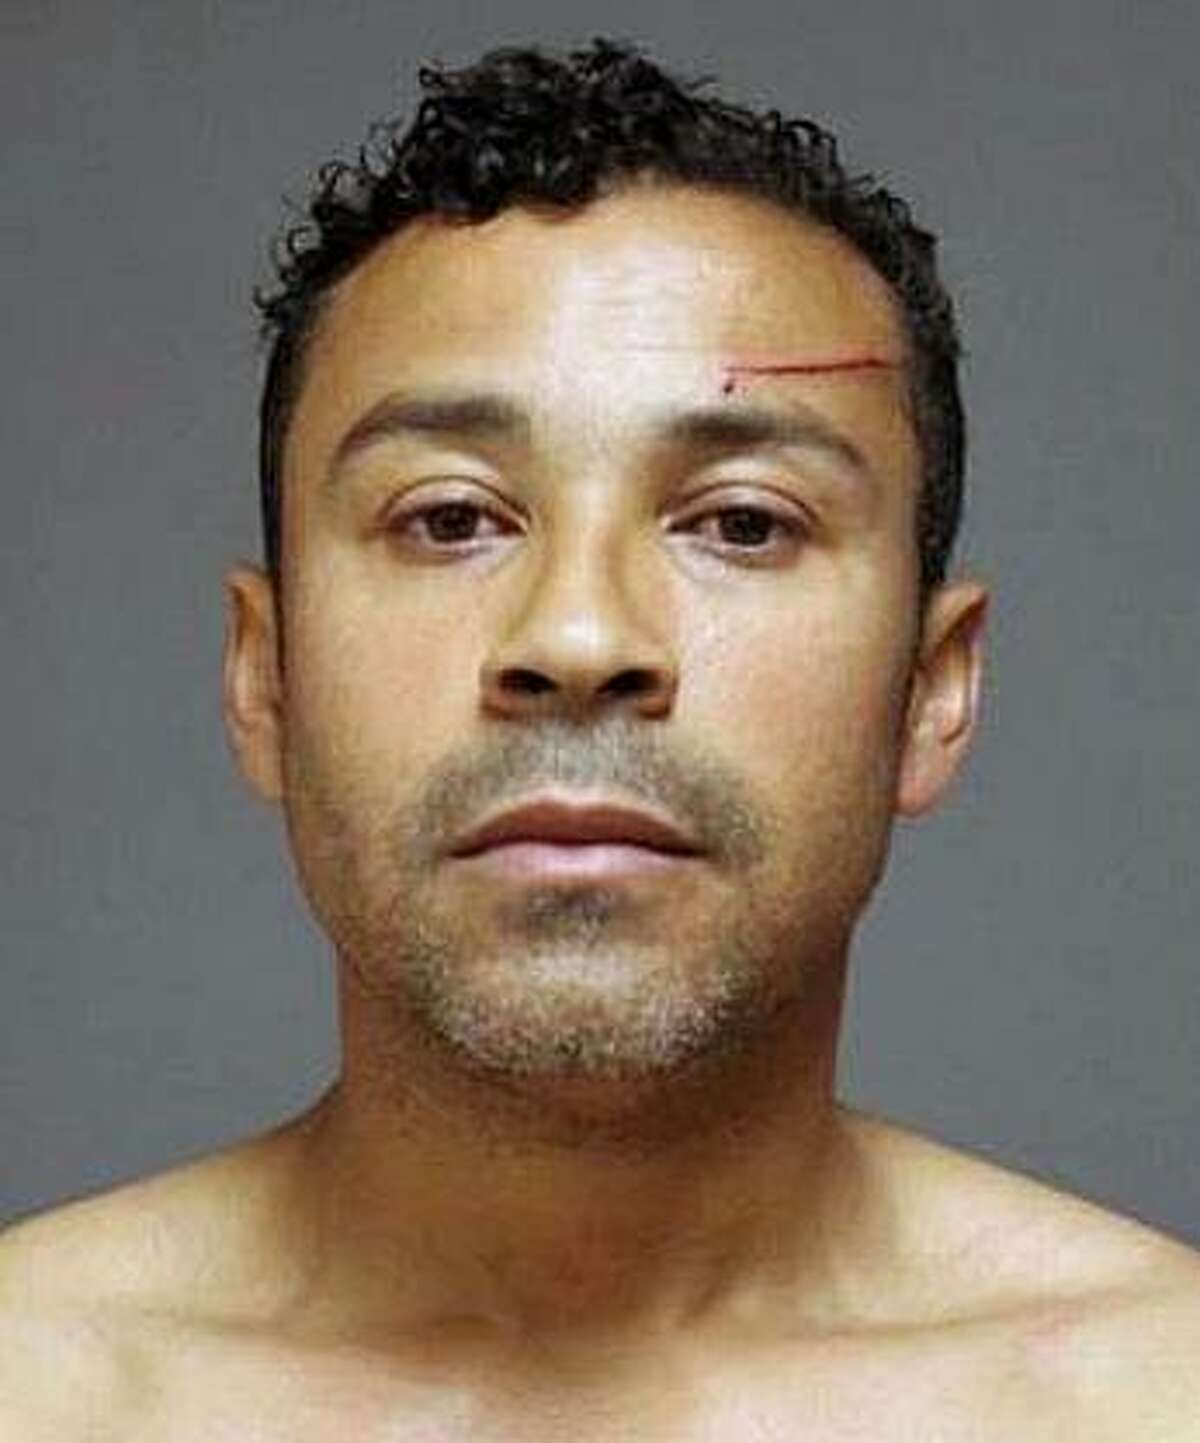 Guilherme Lima-DaSilva, 40, of Houston Avenue in Bridgeport, Conn., was charged with home invasion, assault on an elderly person, second-degree threatening, second-degree larceny, second-degree robbery, unlawful restraint, reckless driving, engaging police in a pursuit, evading responsibility, unregistered motor vehicle, misuse of plates and no insurance.